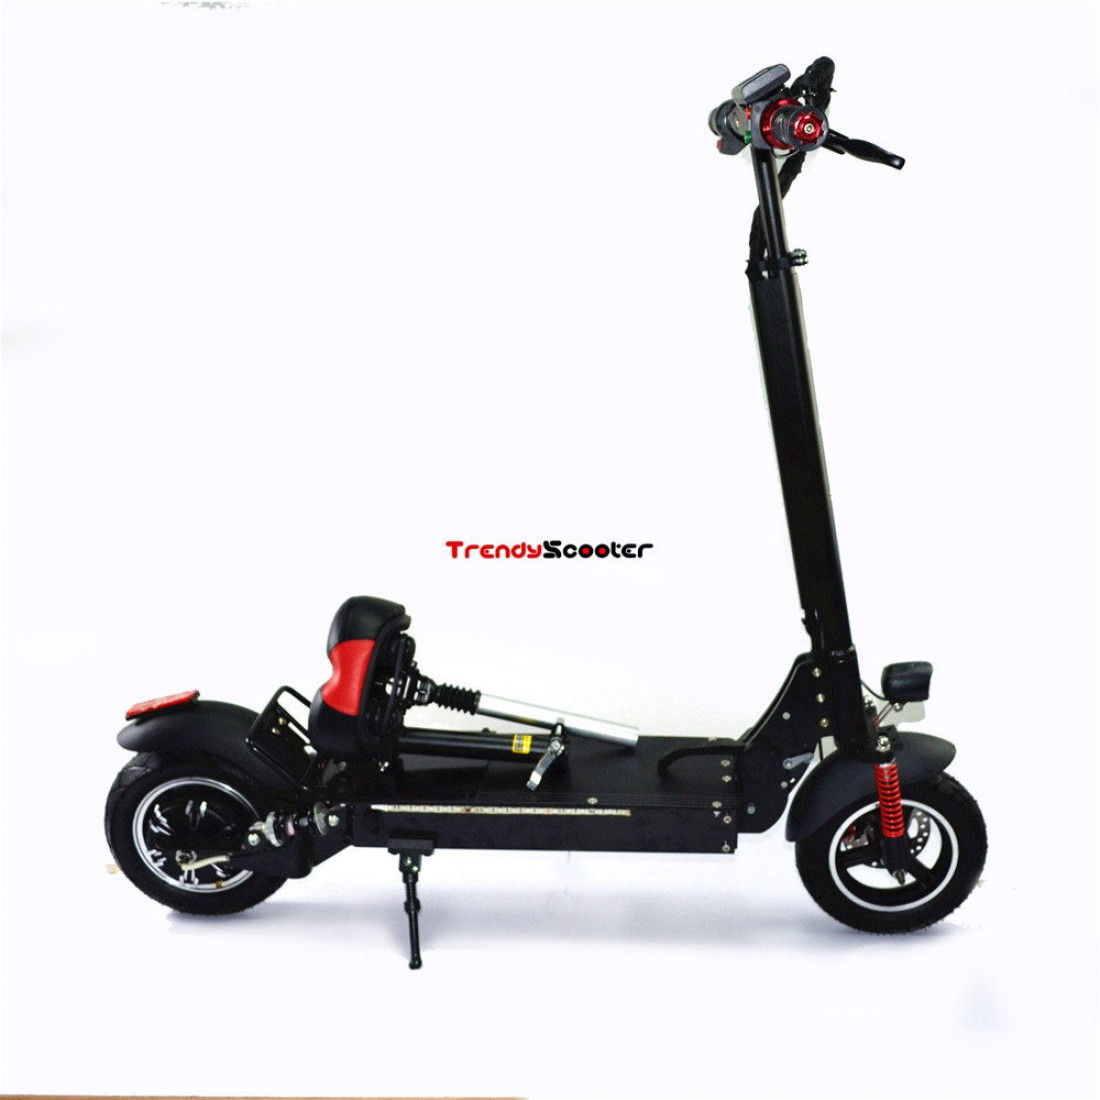 rhino-smart-electric-scooter-1100×1100